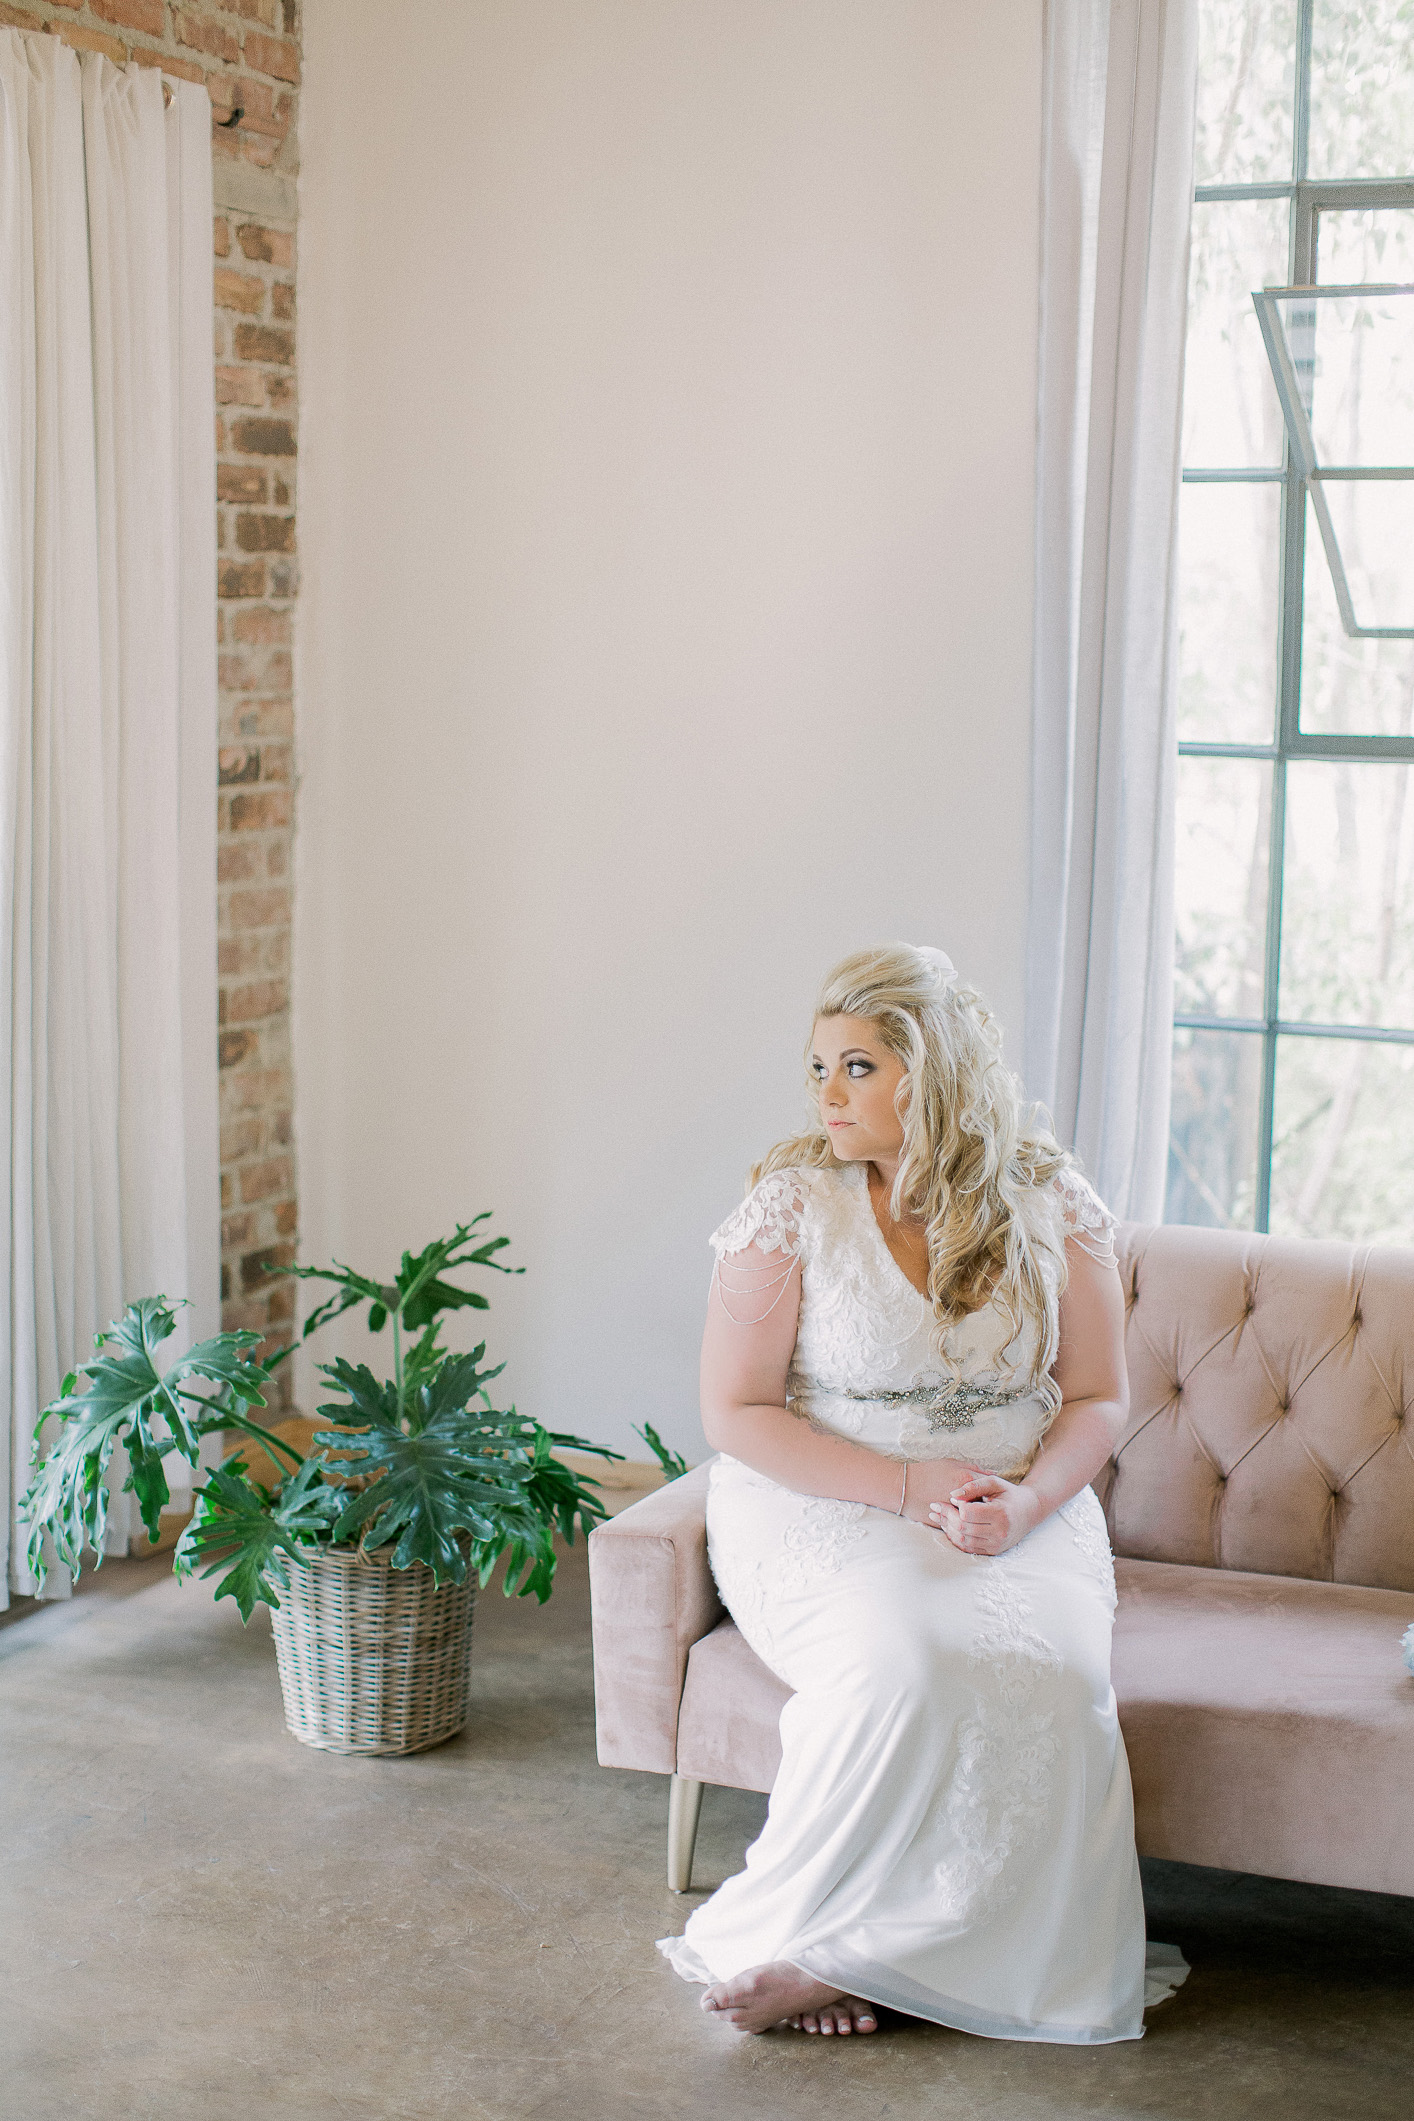 lace on timber wedding 2018 clareece smit photography016.jpg